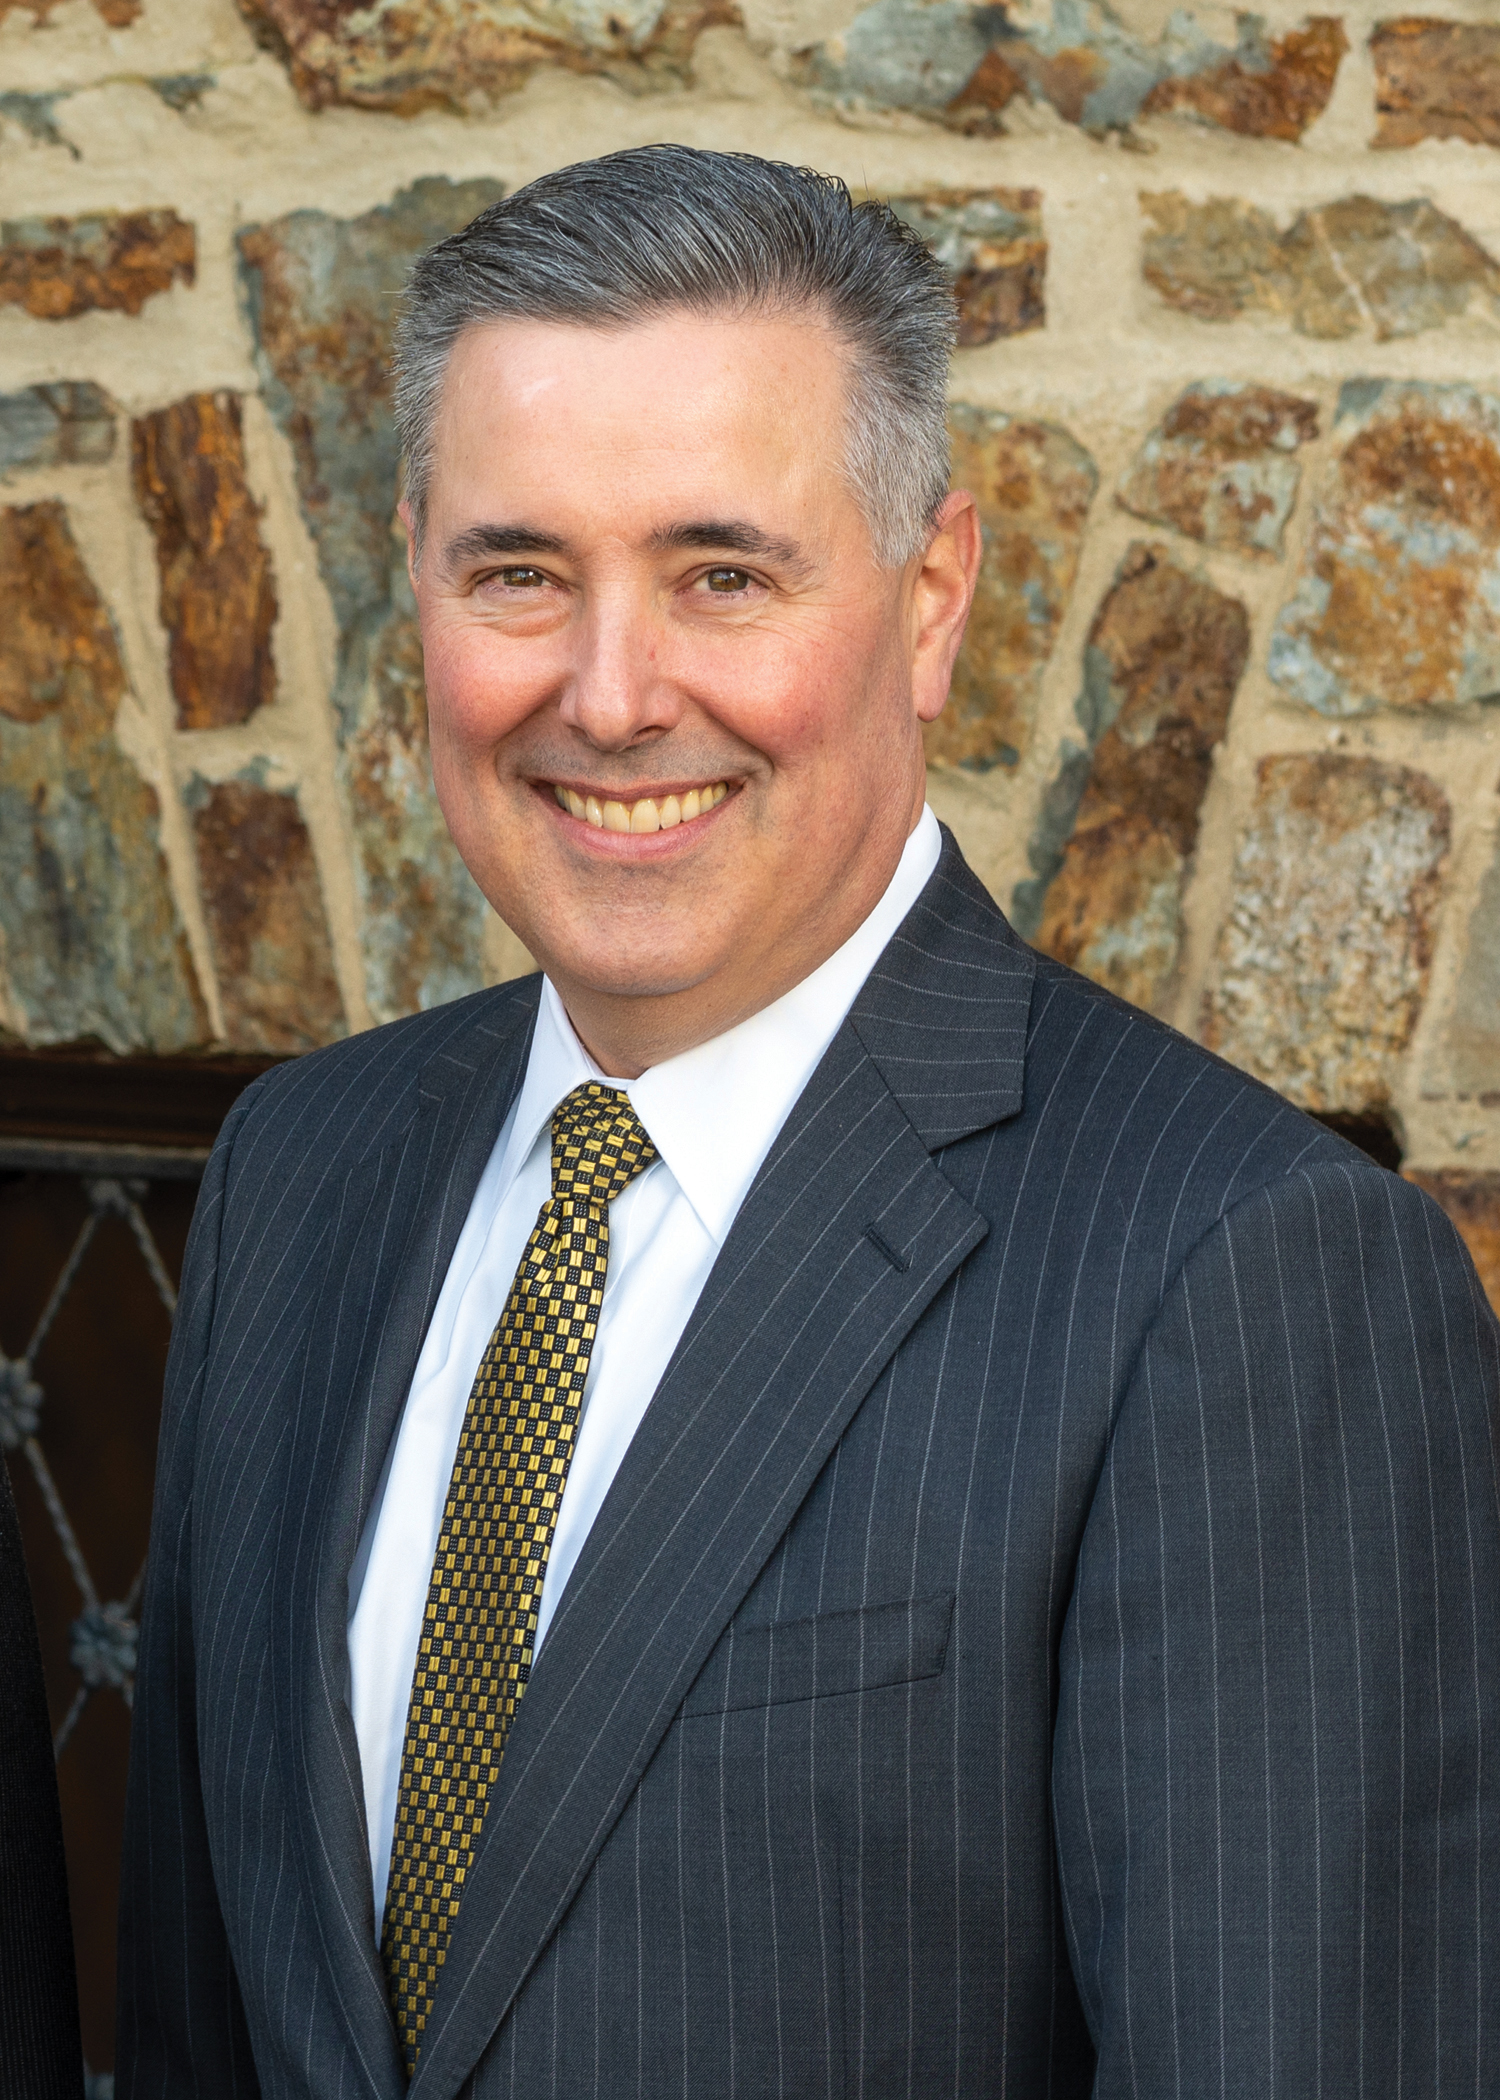 Eugene Draganosky, President and CEO of Traditions Bank